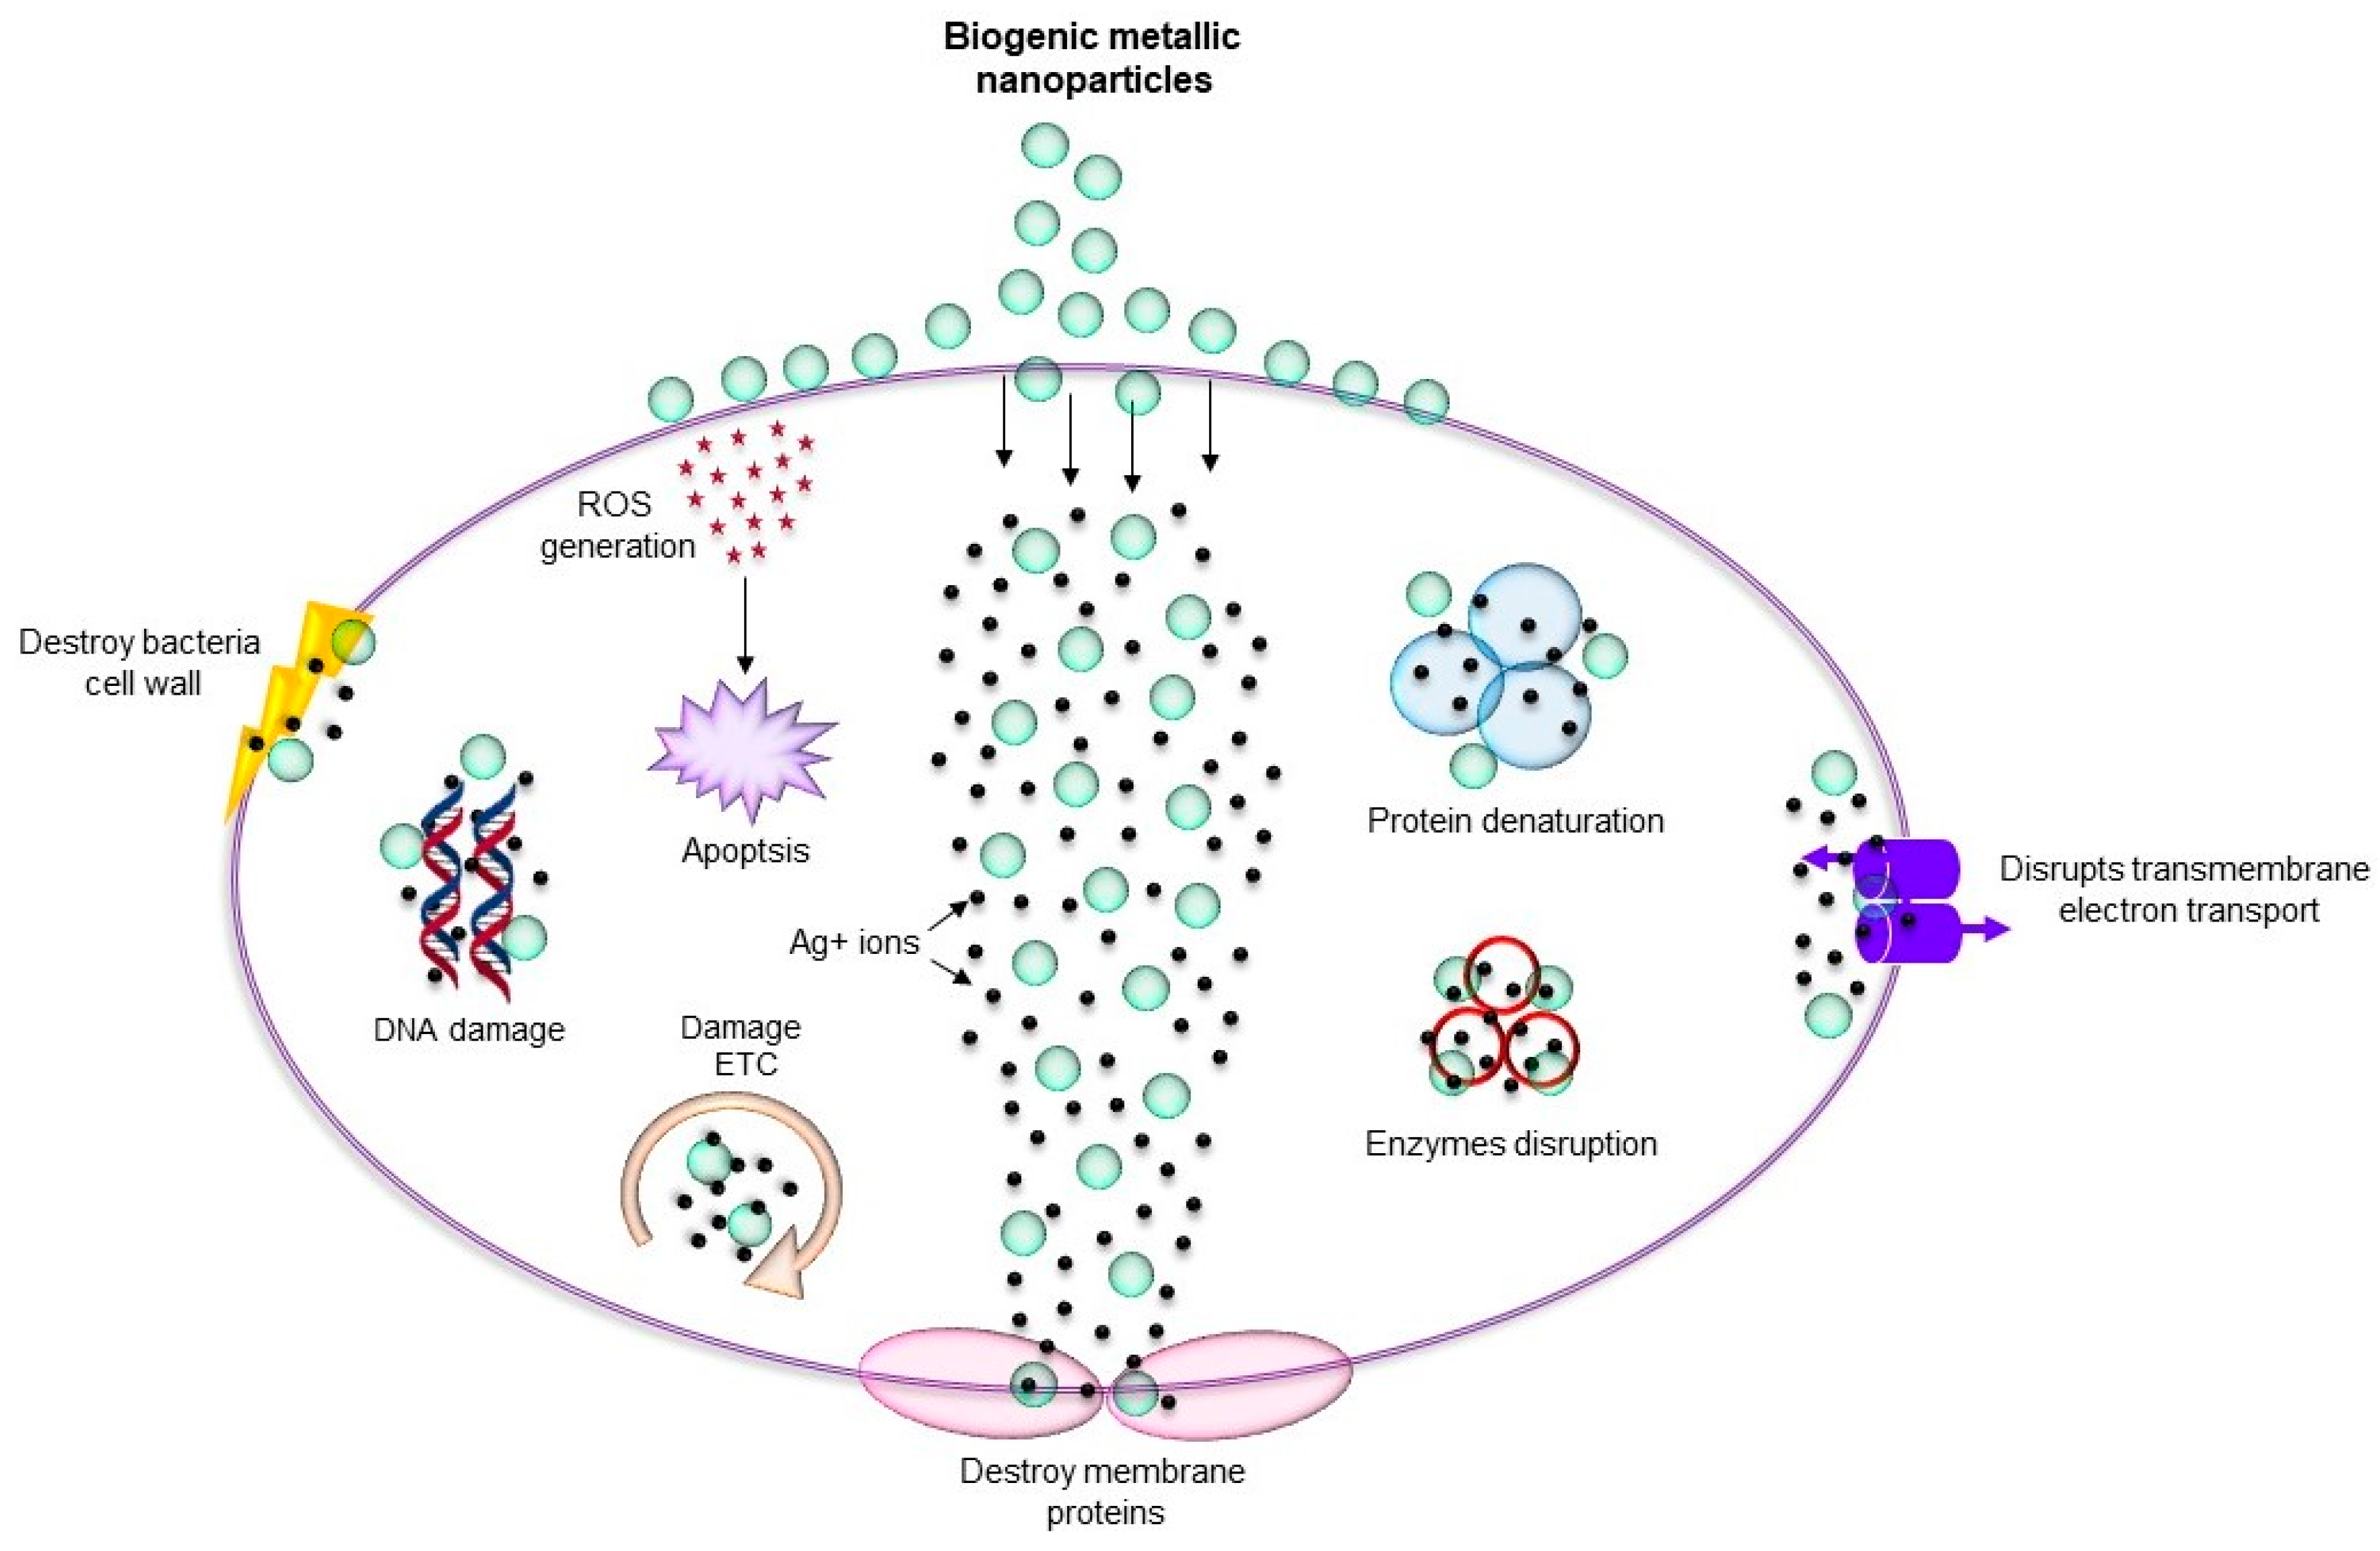 Nanomaterials | Free Full-Text | Antimicrobial Effects of Biogenic